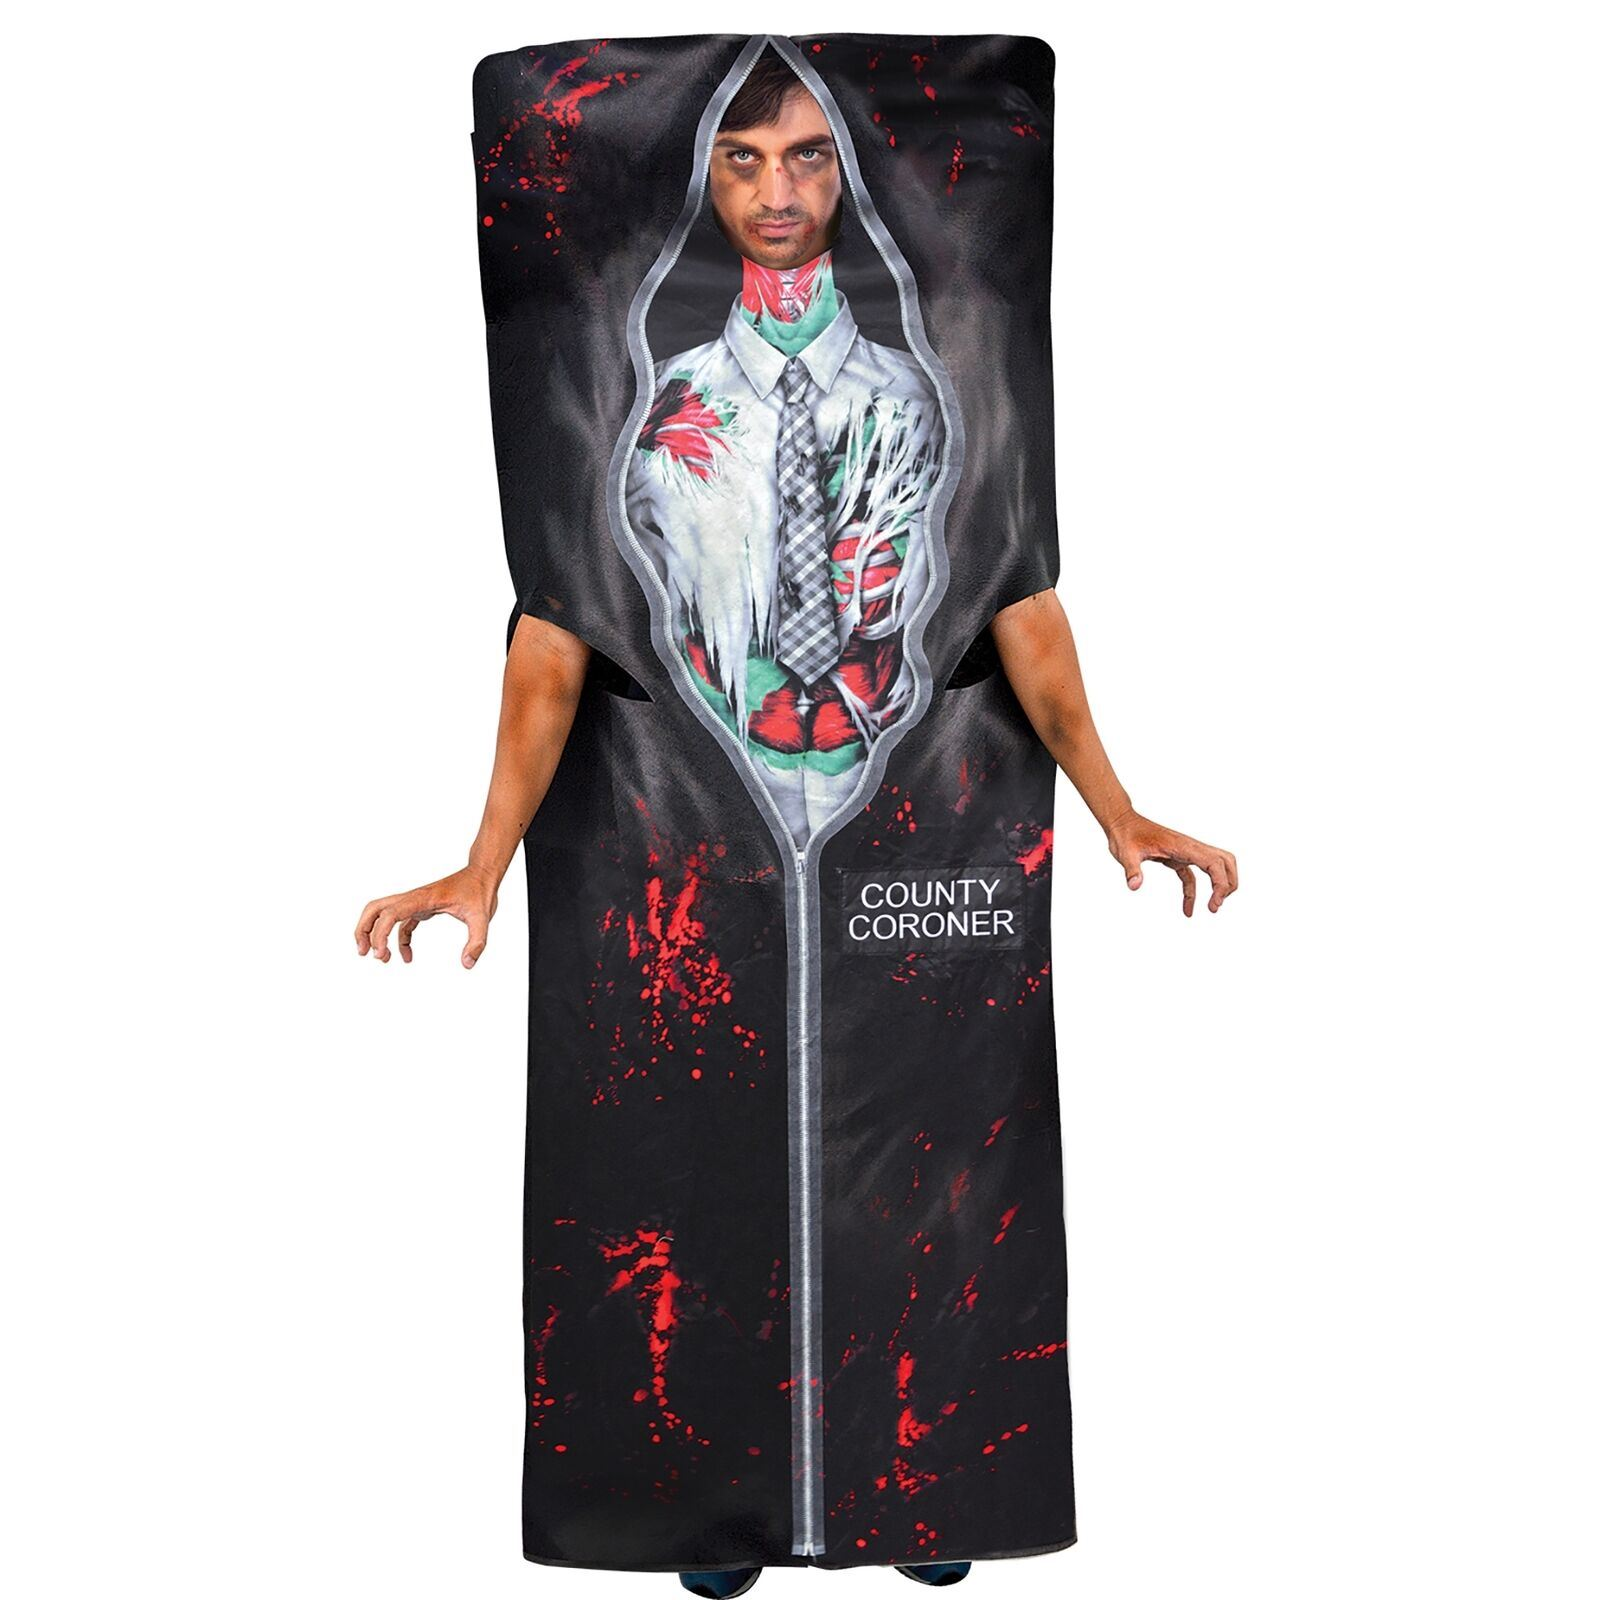 c026bf08026 Amscan Body In Bag Adult Plus Size Fancy Dress Halloween Costume Dead  Coroner